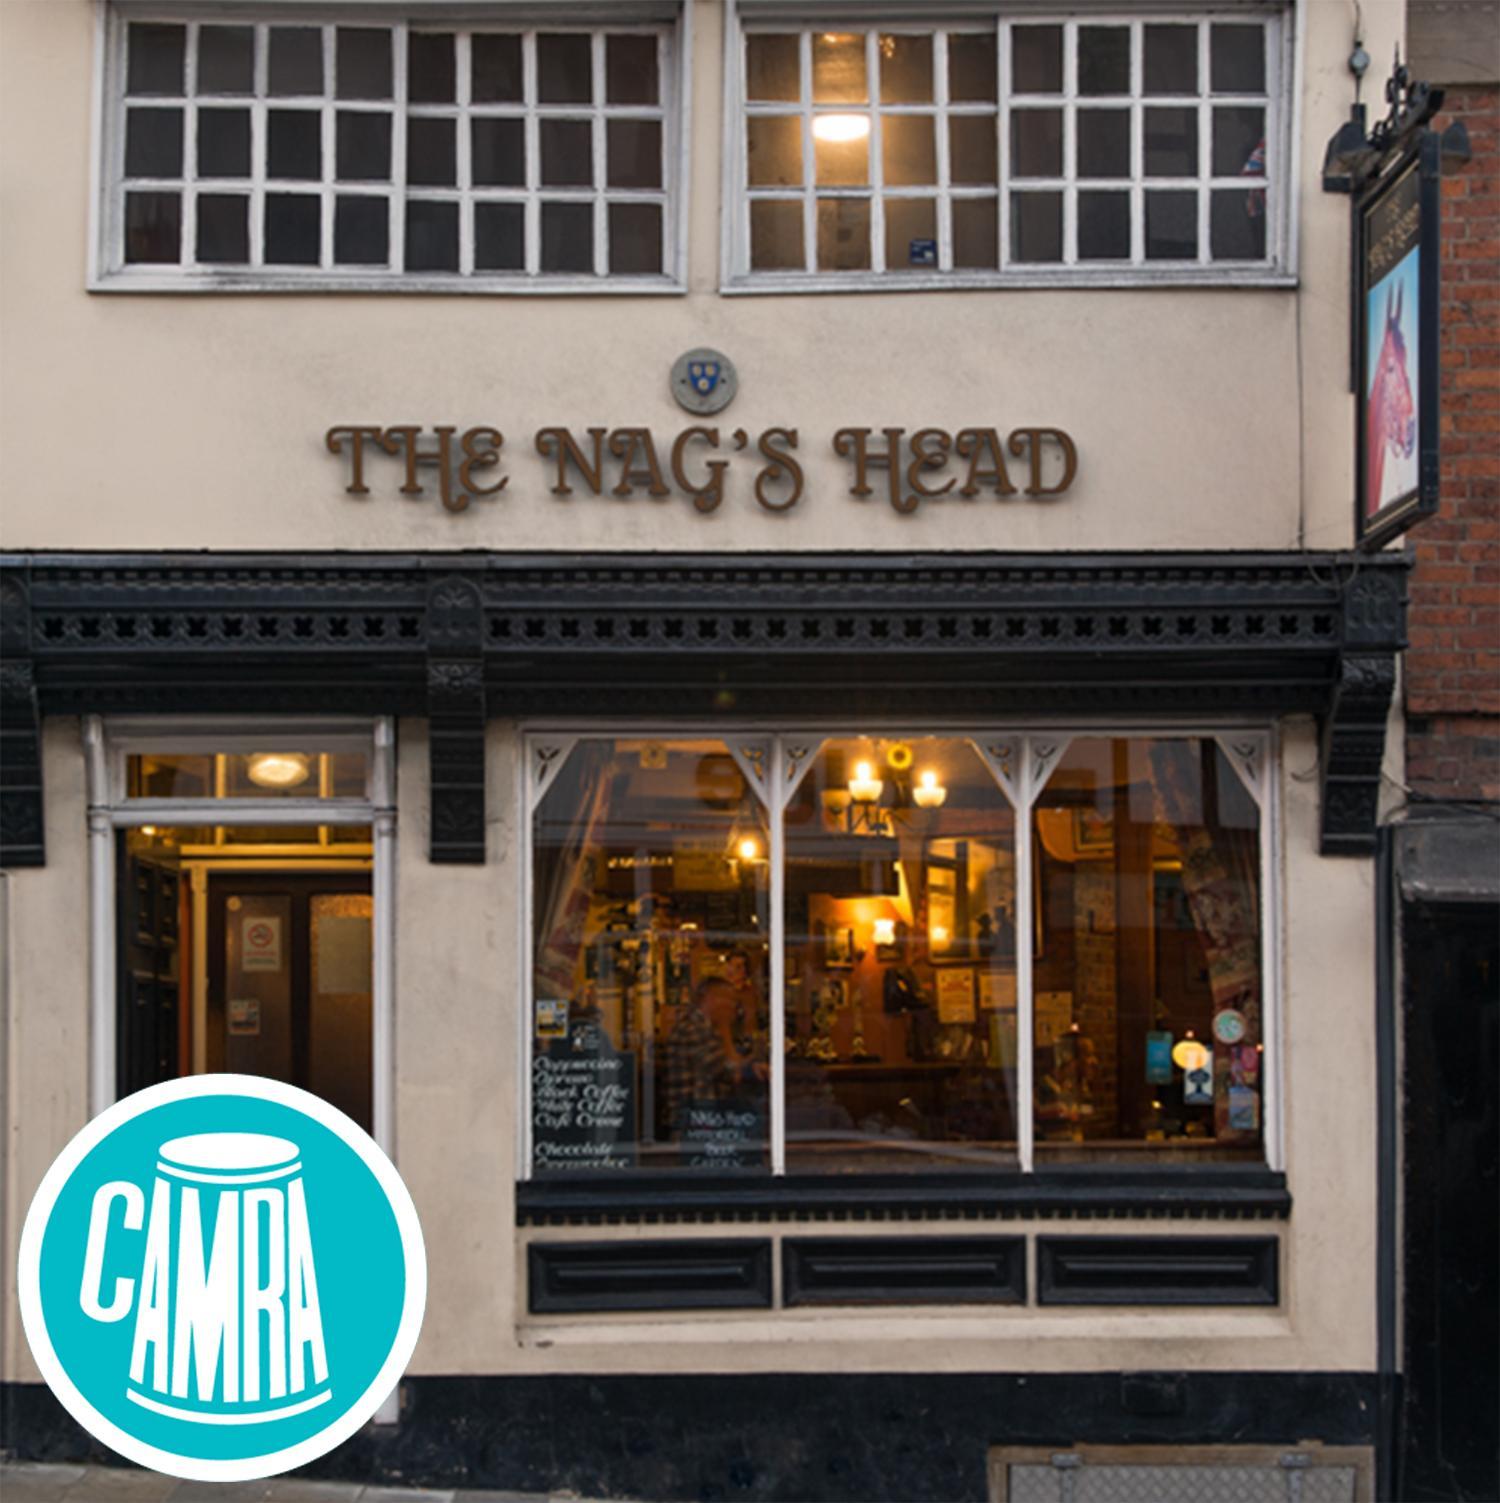 The Nag's Head named by CAMRA as must-visit haunted pub